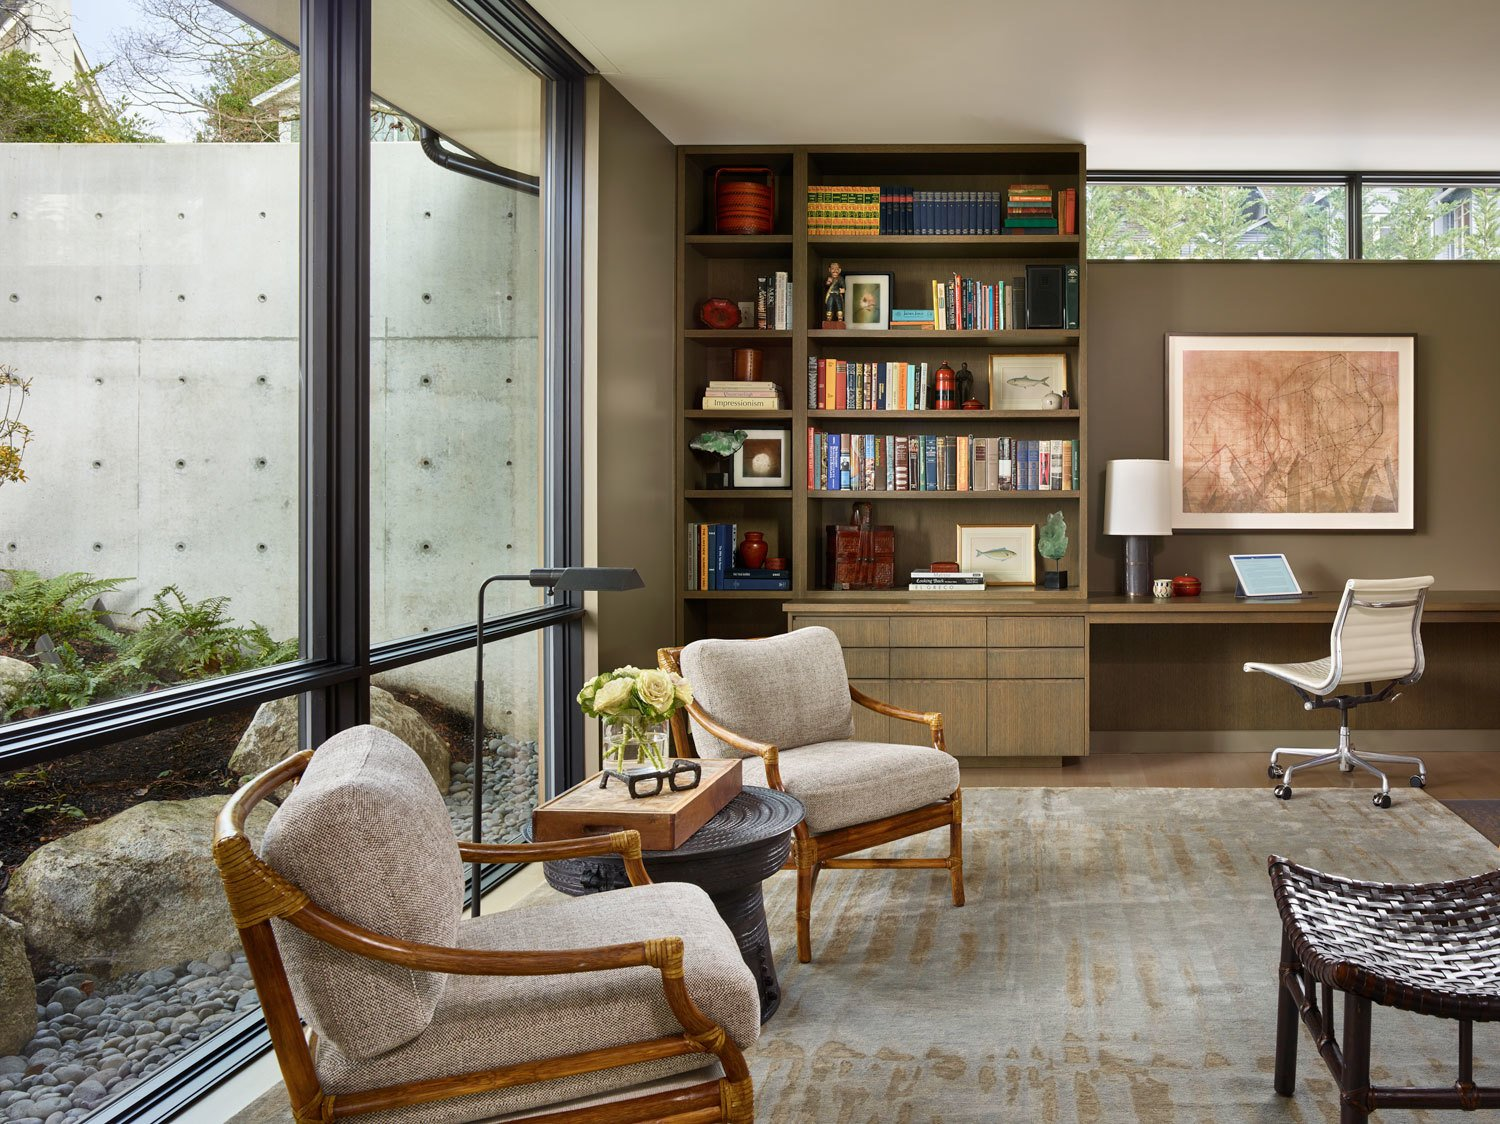 Office, Study Room Type, Desk, Shelves, Light Hardwood Floor, Library Room Type, Chair, Storage, Lamps, and Bookcase  Union Bay Residence by NB Design Group